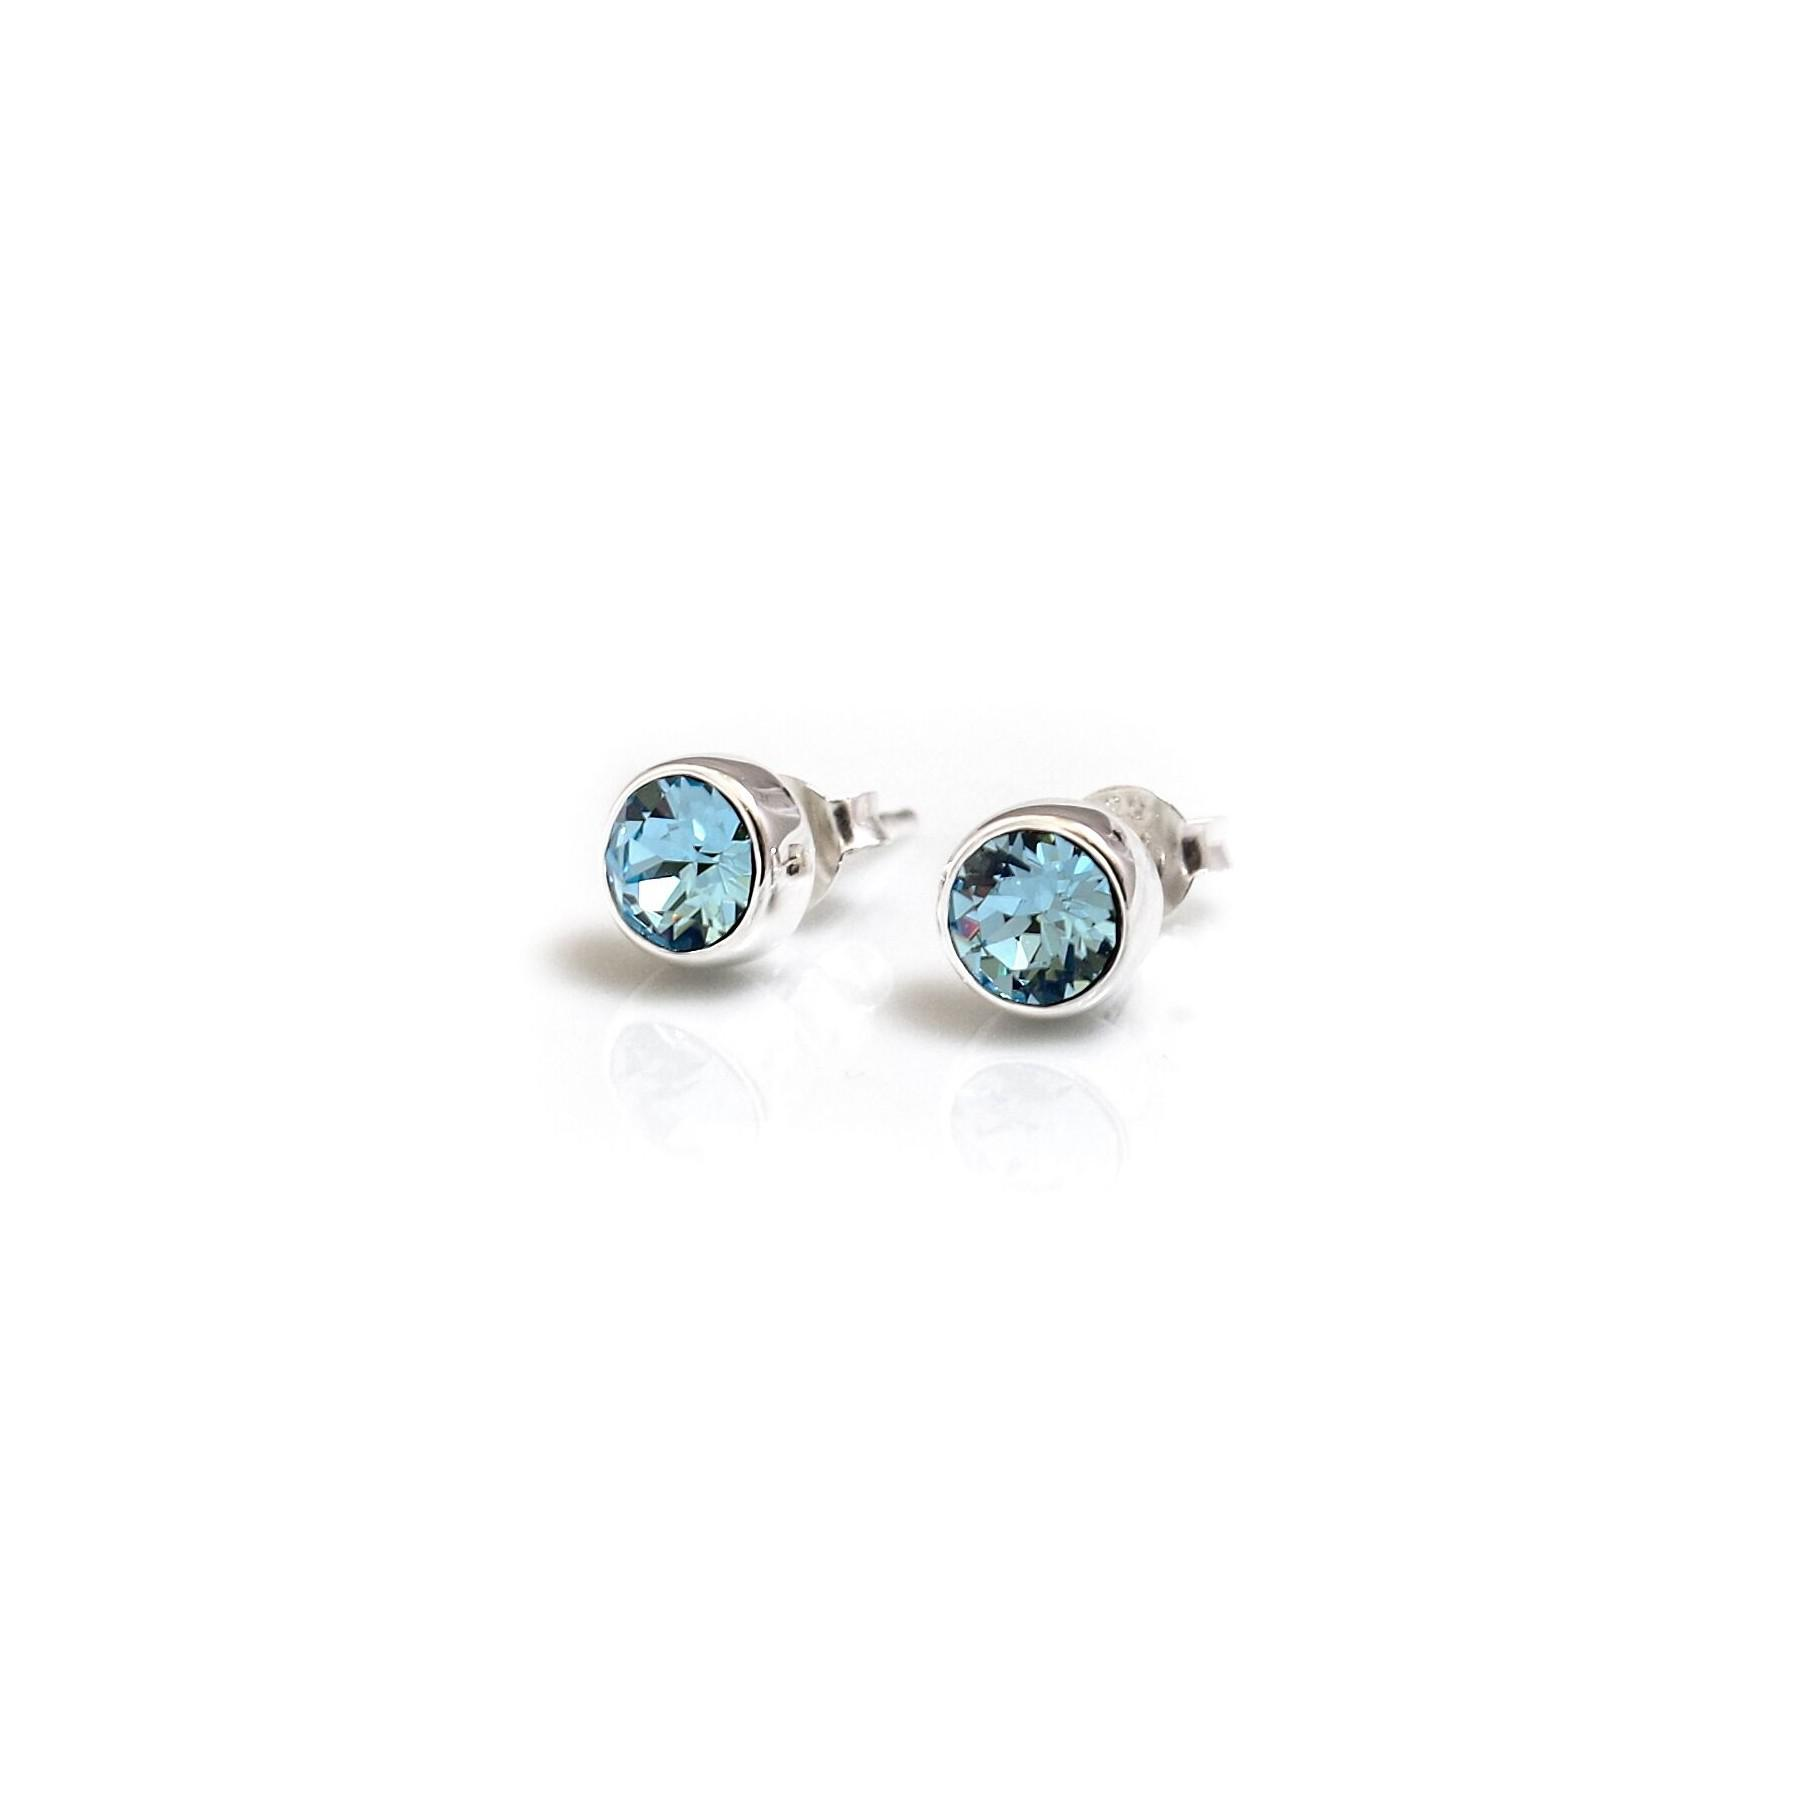 prong accent white birth aqua march cubic zircornia sizes double earrings yellow other set stone gold screwback colors solitaire round stud cut marine